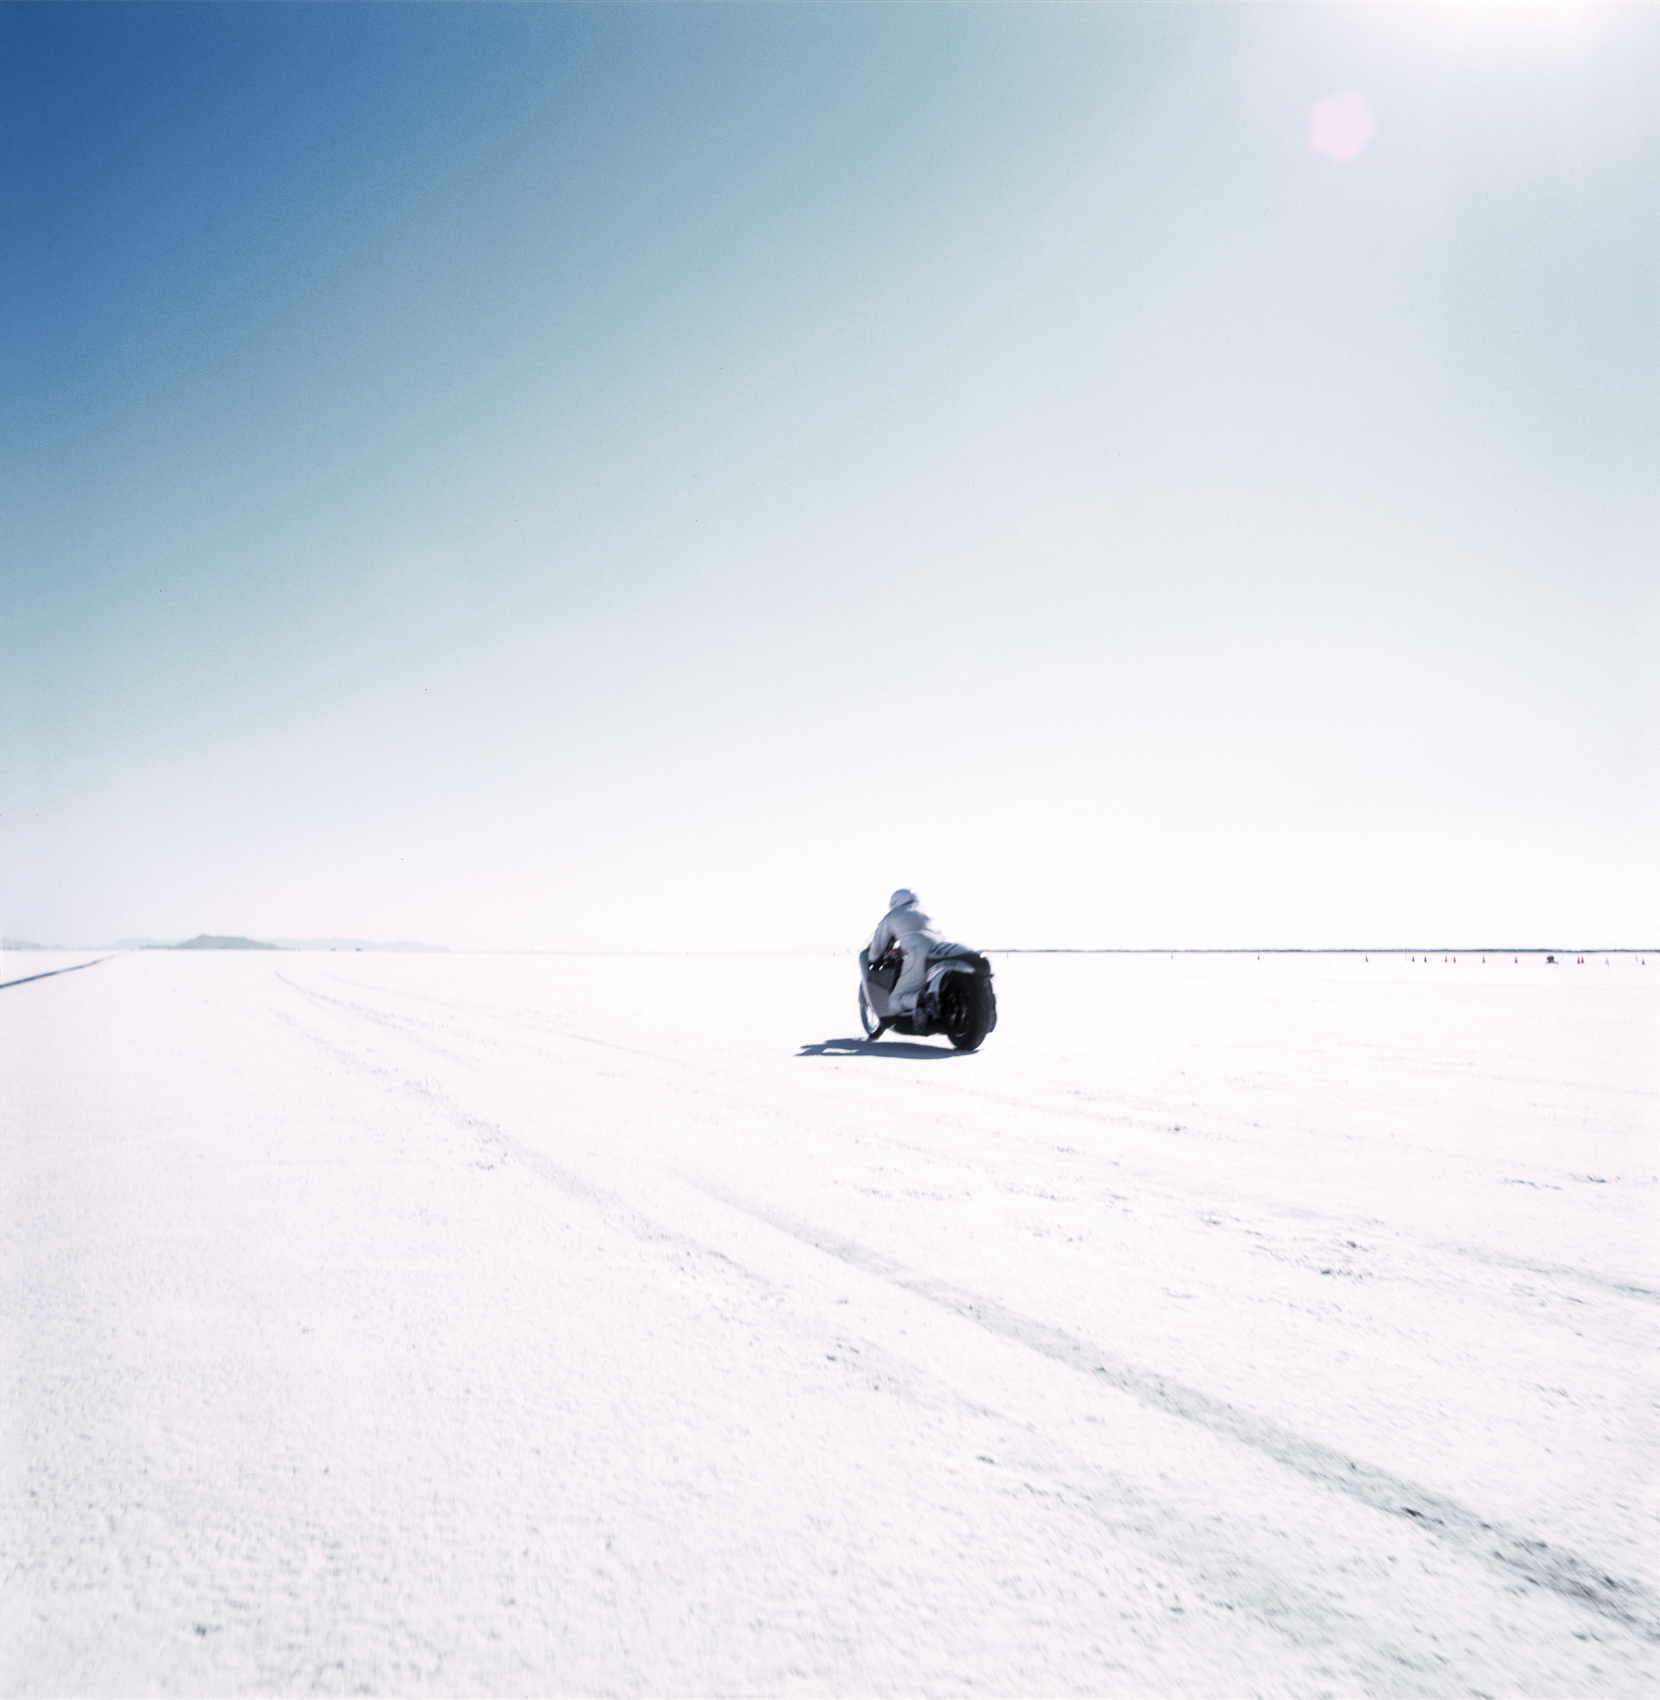 Road Trip - Motorcycle Driving on the Salt Flats